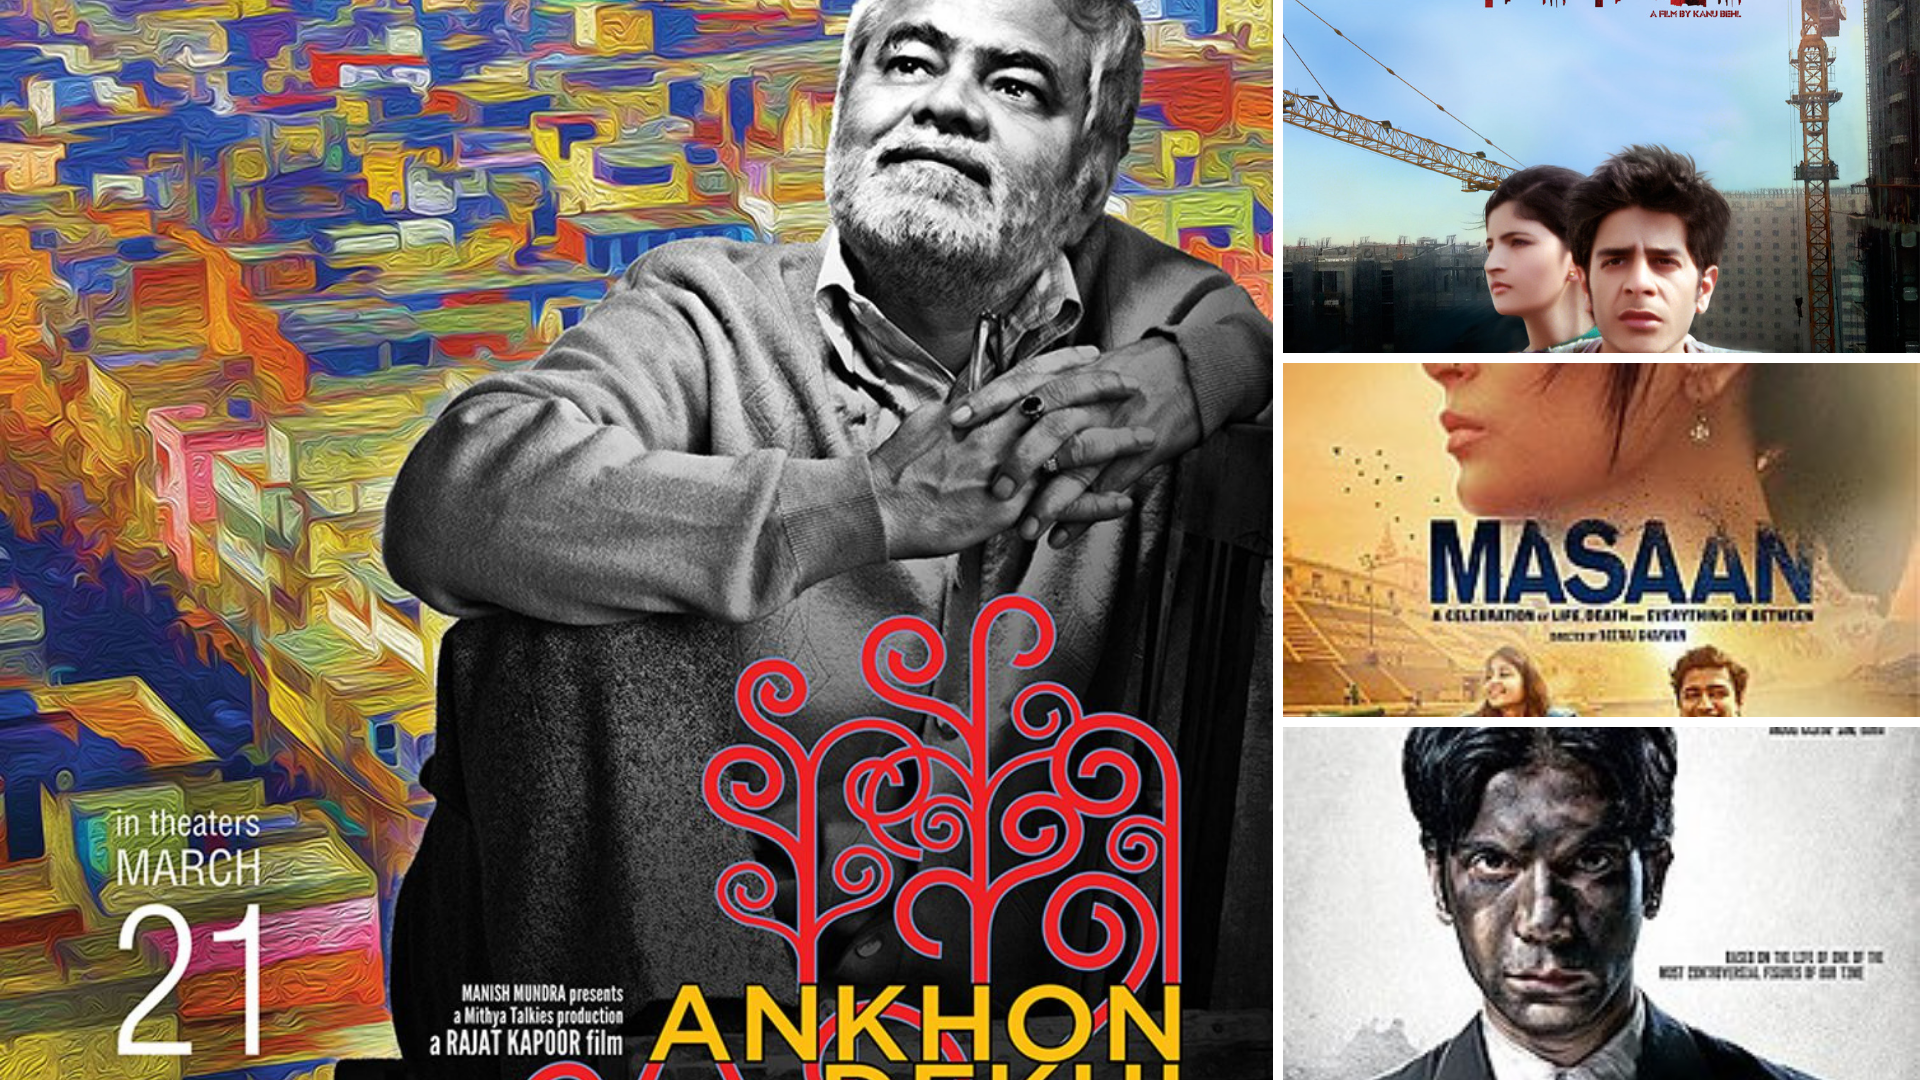 50 Underrated Bollywood Movies That Every Movie Lover Should